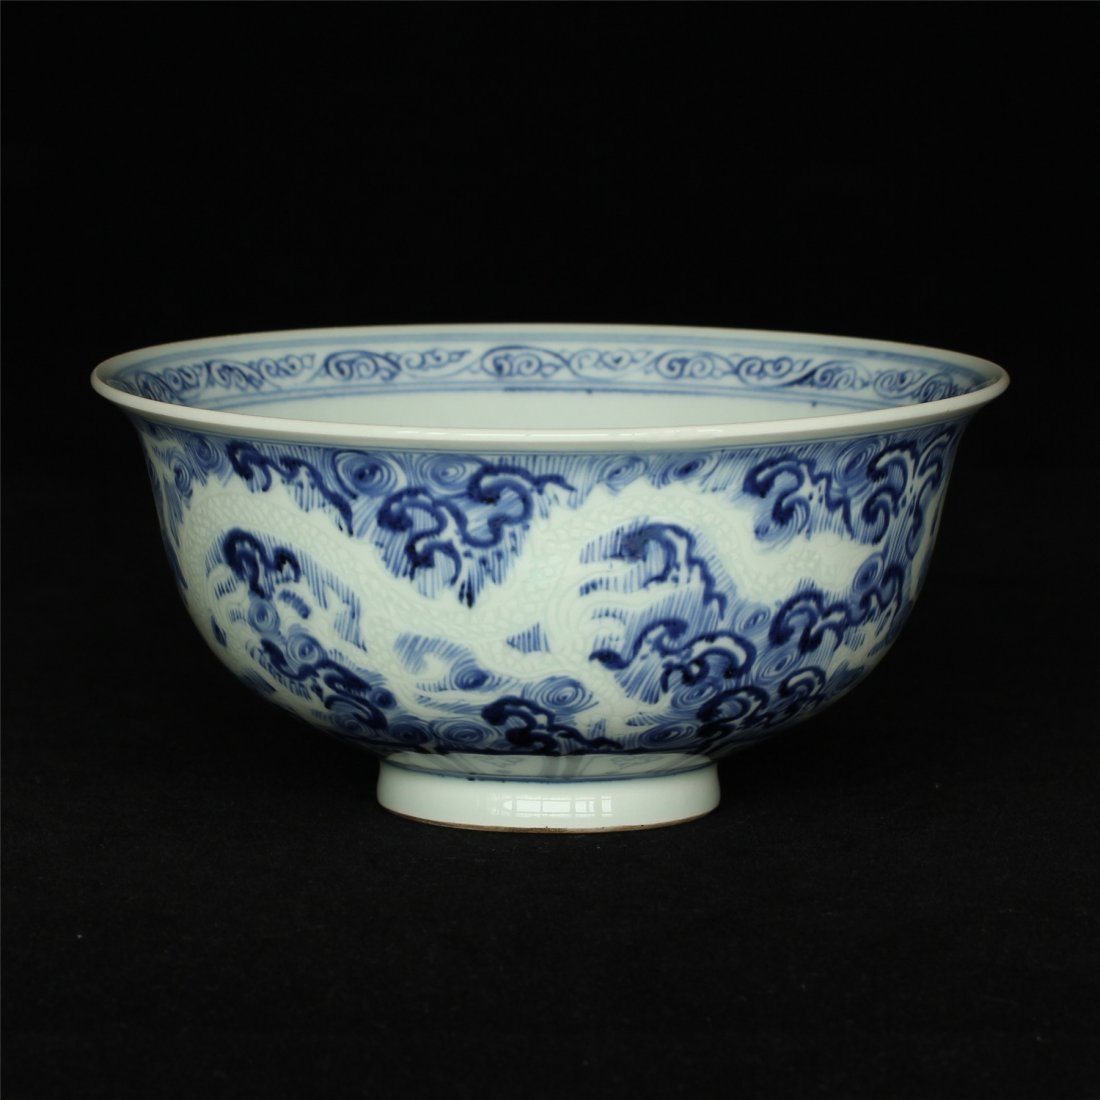 Blue and white porcelain bowl.